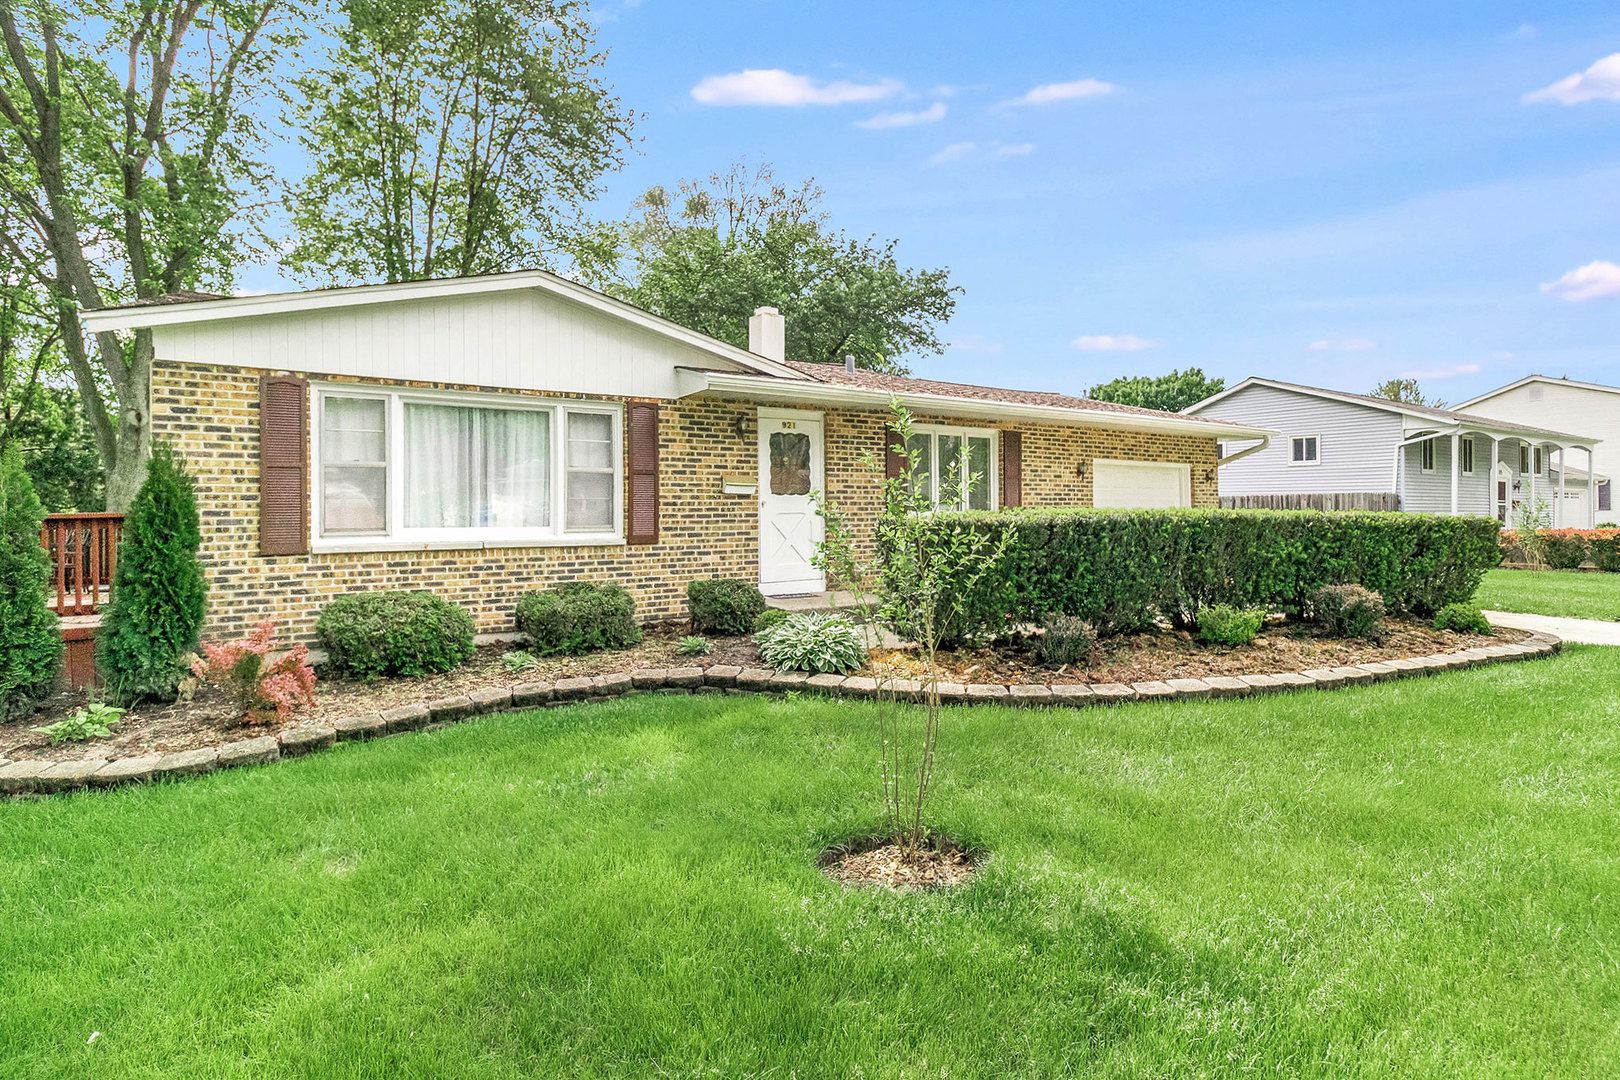 Photo for 921 S 10th Avenue, ST. CHARLES, IL 60174 (MLS # 10437172)